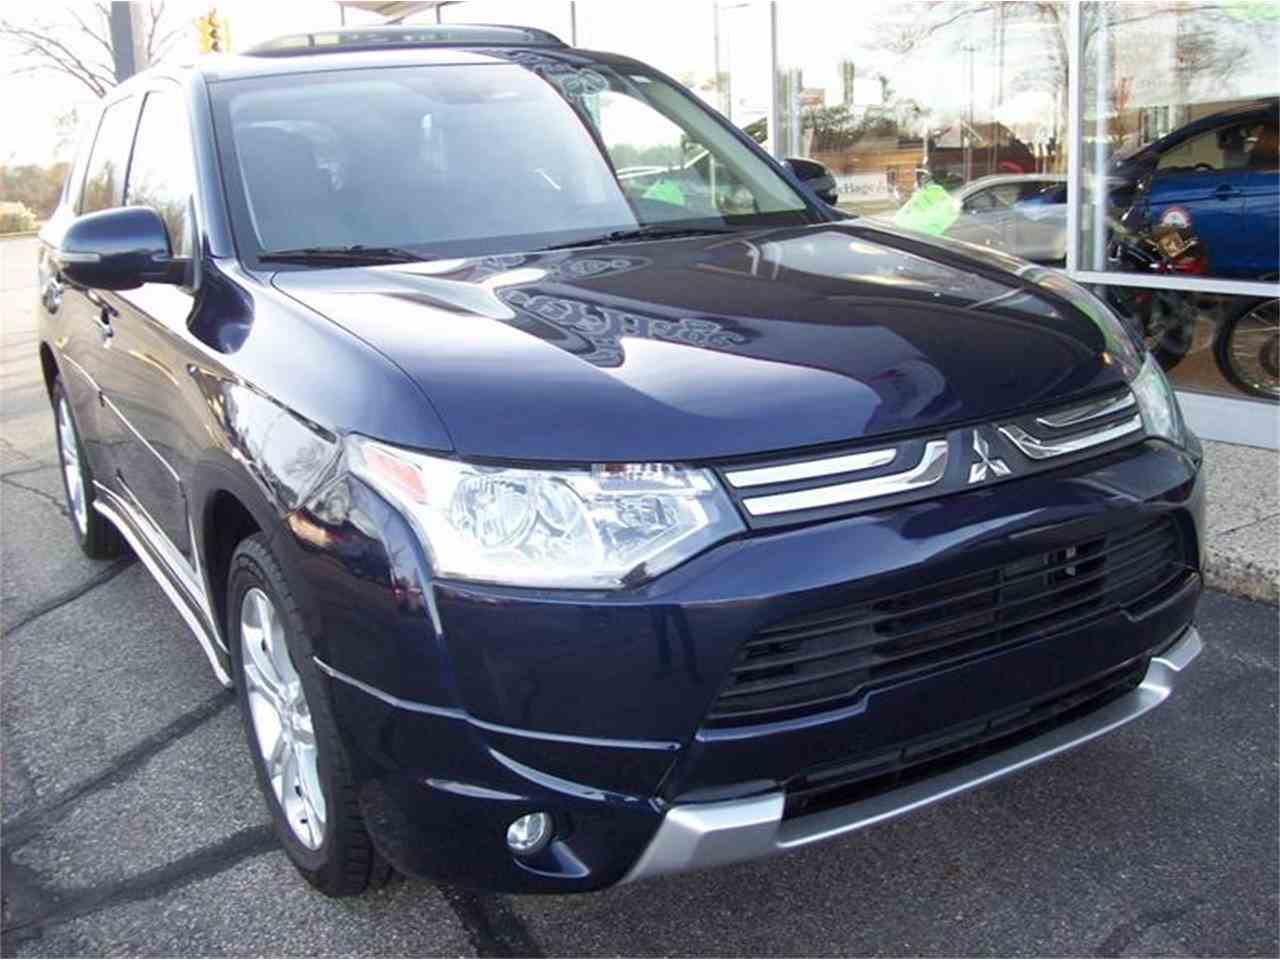 Large Picture of '14 Outlander located in Michigan - $17,495.00 - MB5J